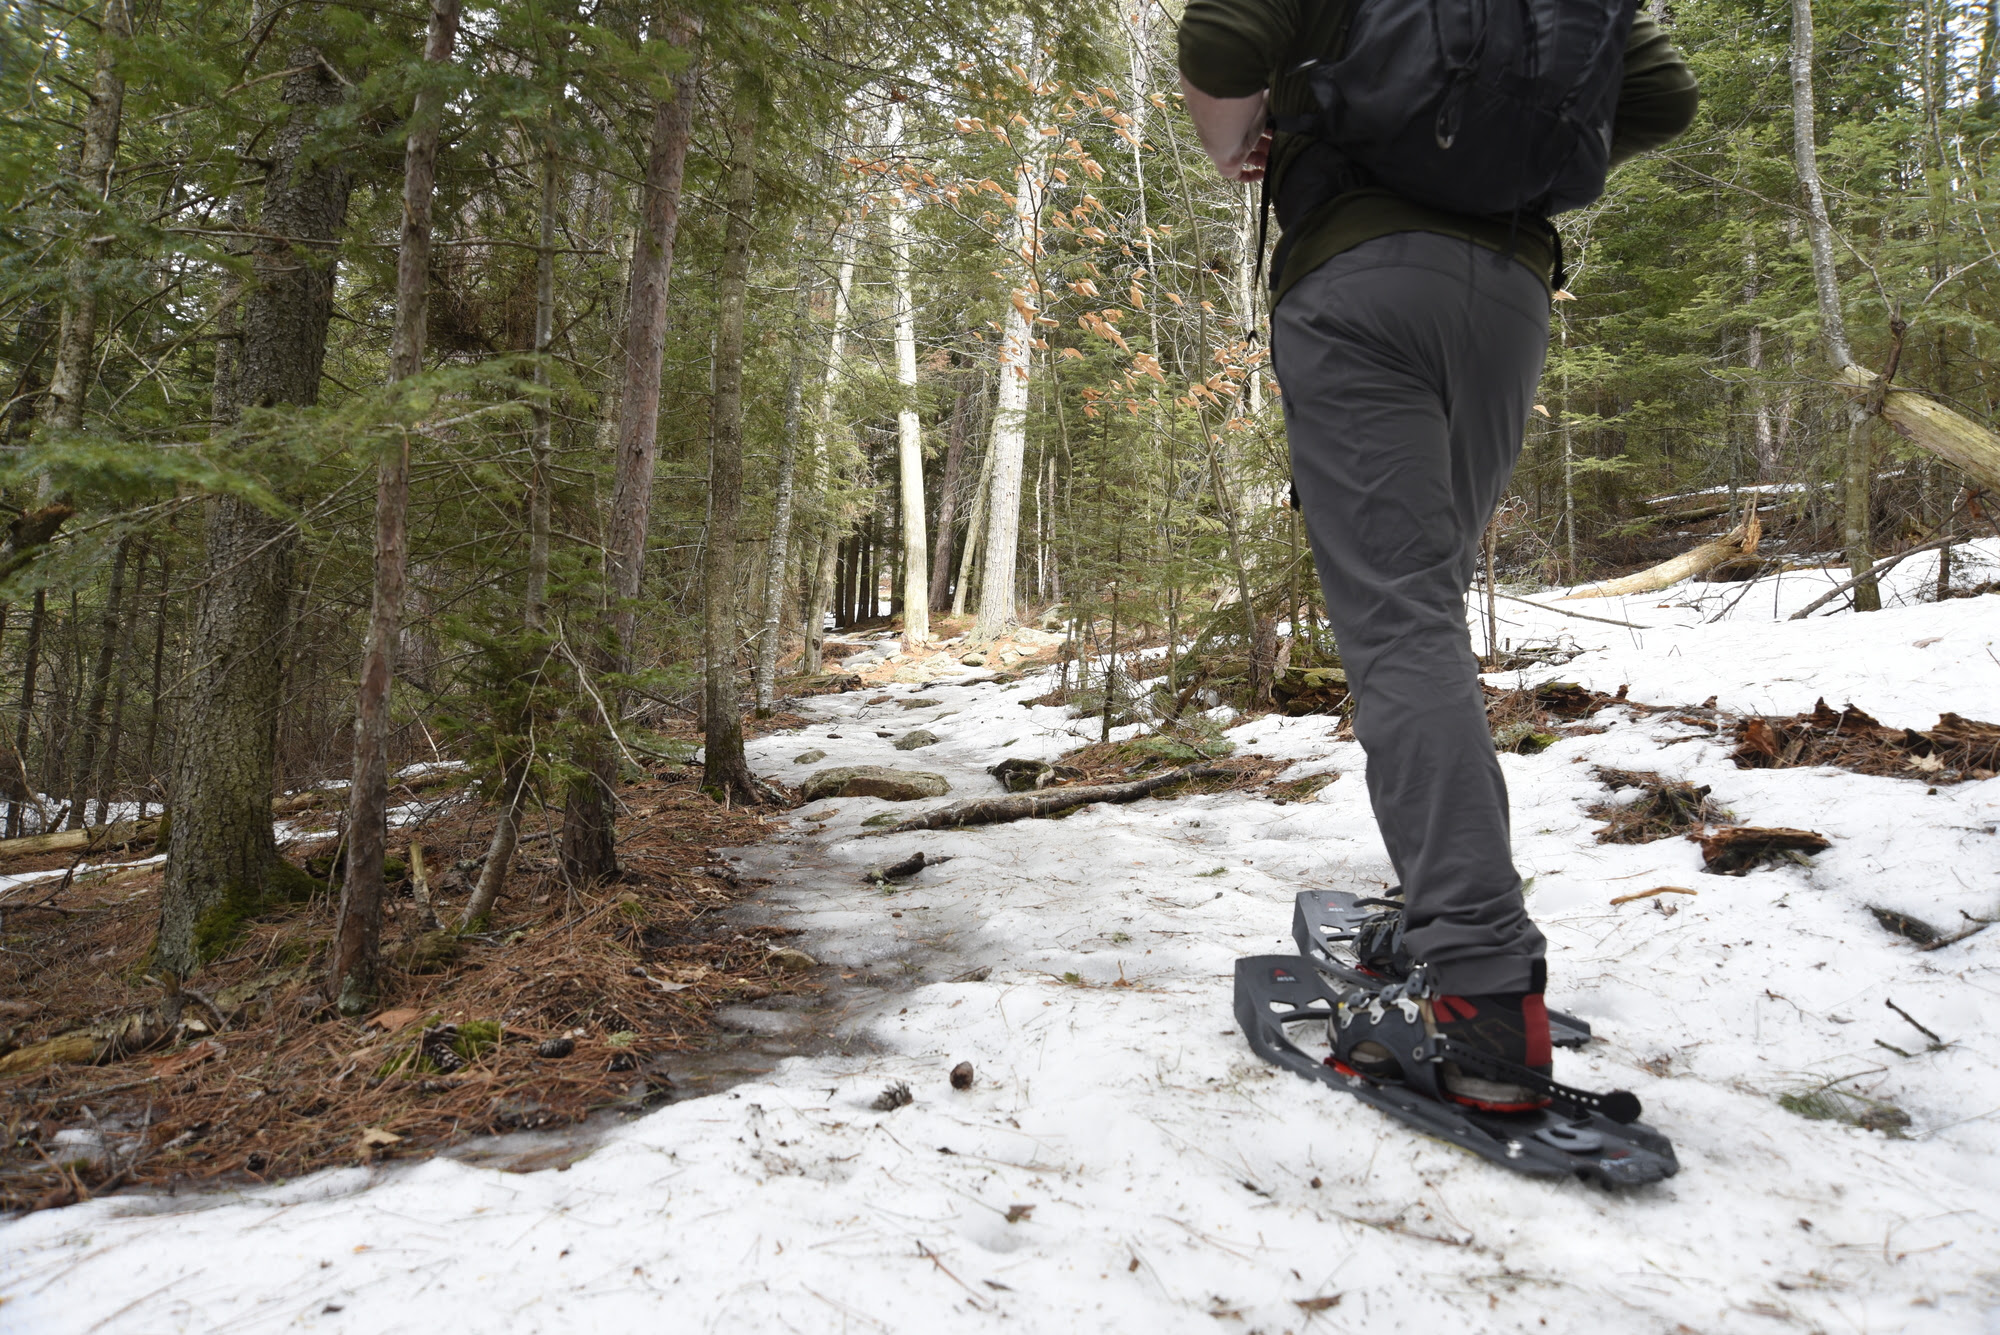 Hiker wearing snowshoes on snowy trail